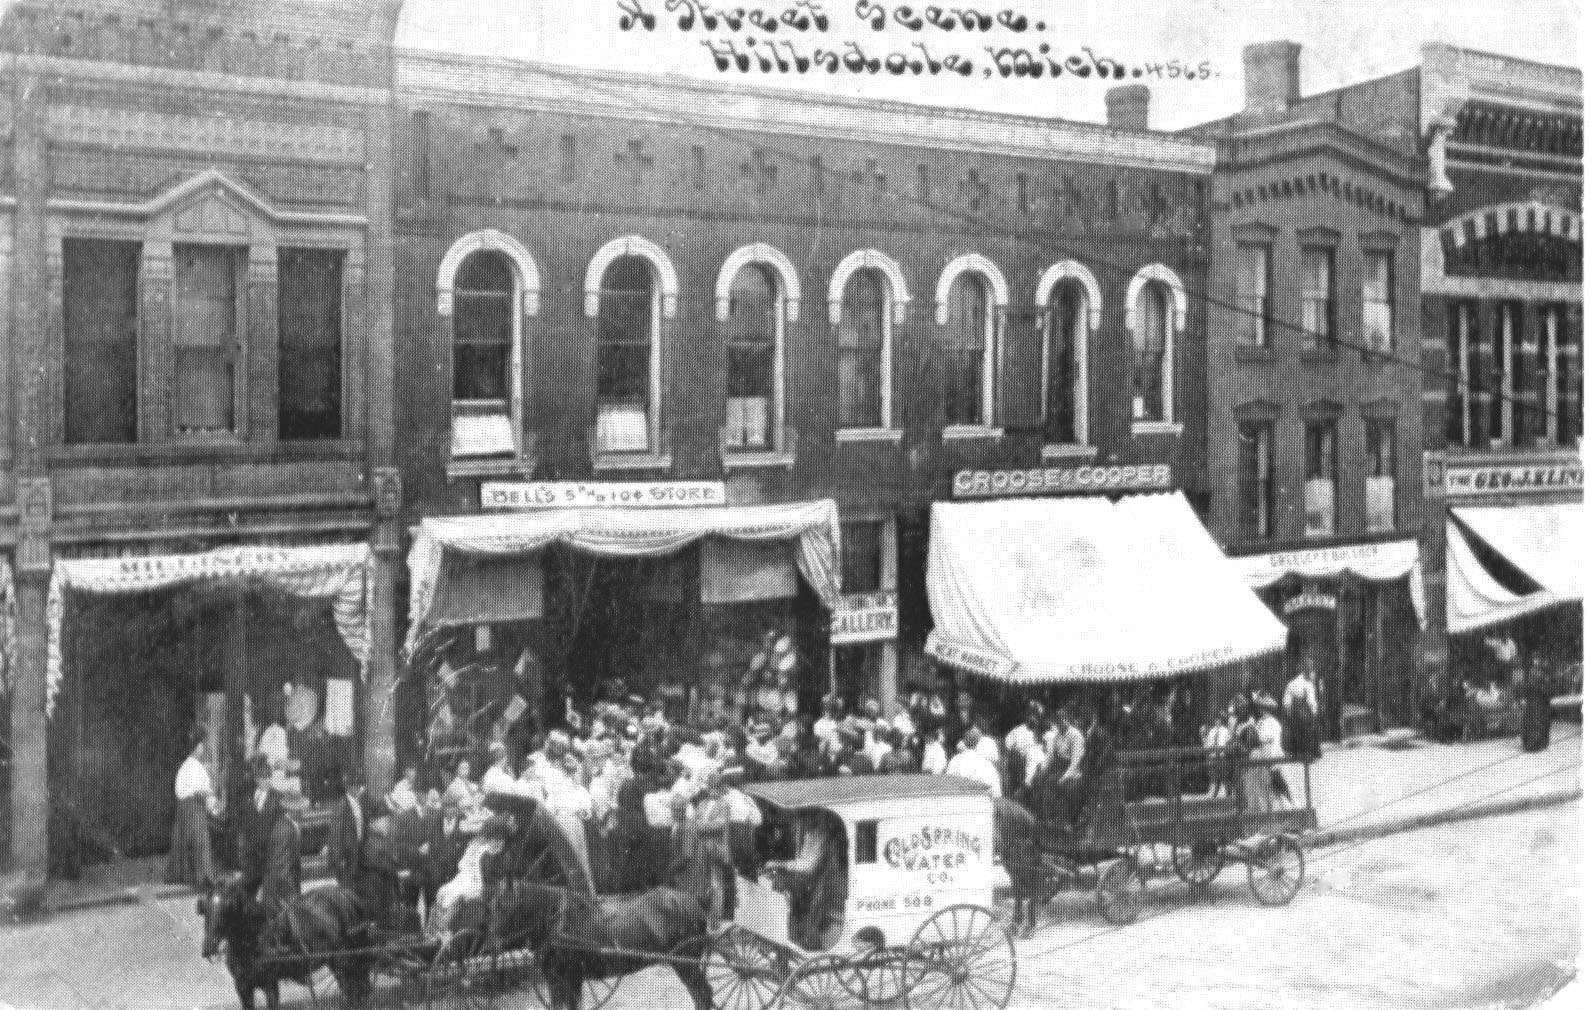 howell street, with a deliver wagon of water from cold spring park